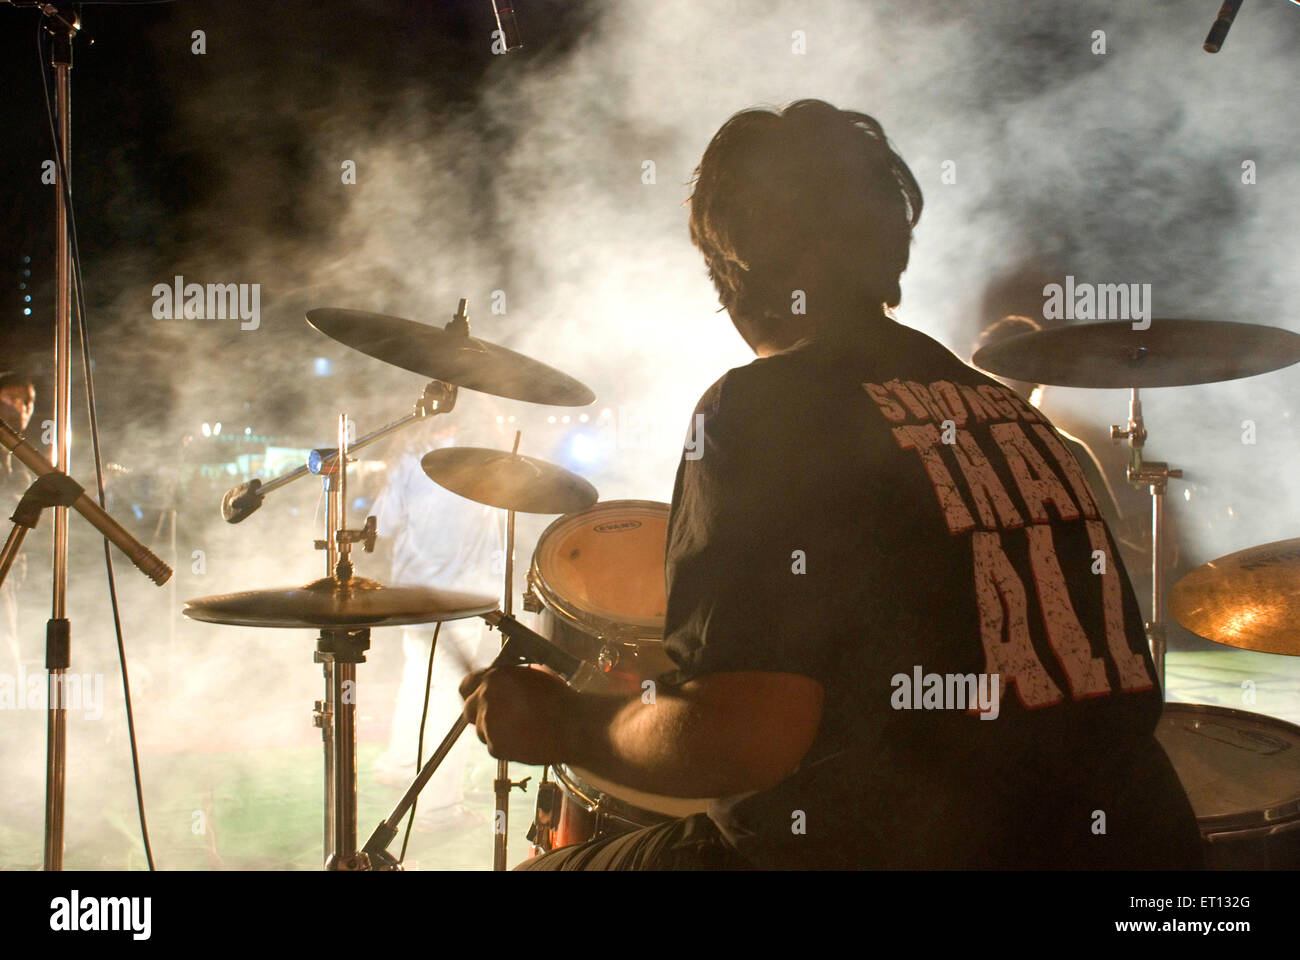 Rock show drummer NO MR - Stock Image